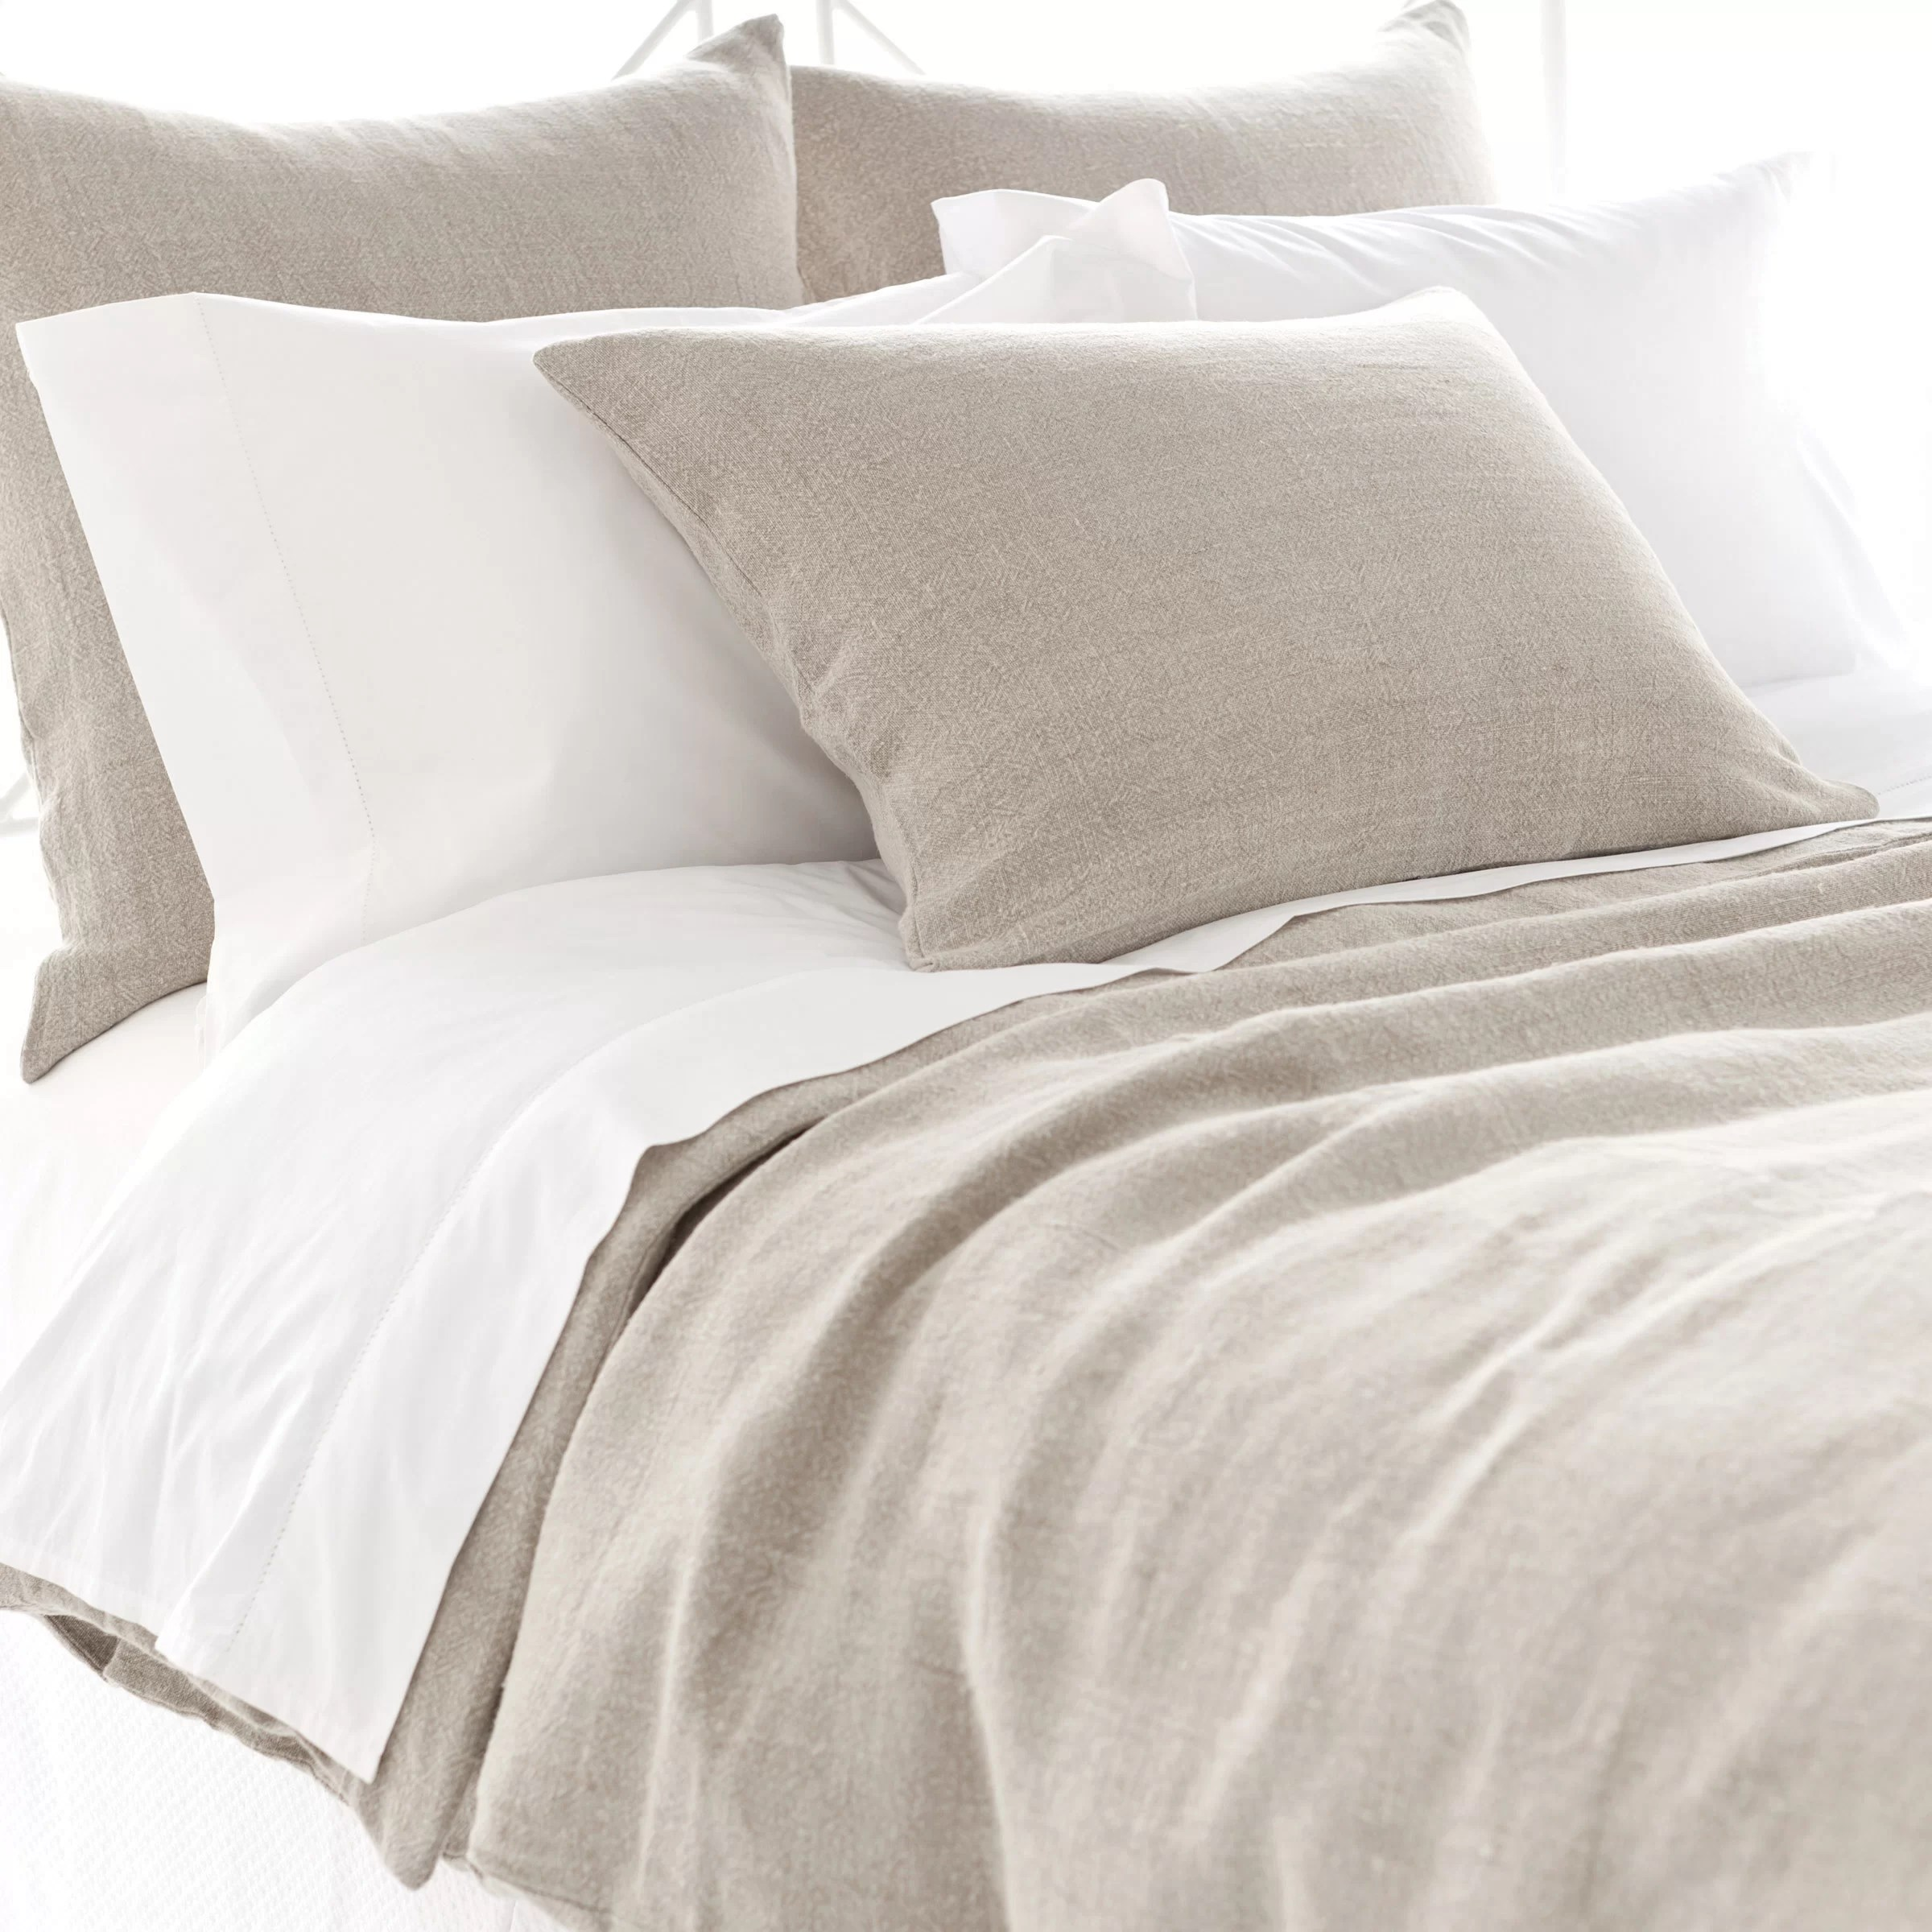 Linen Bedding Reviews Pine Cone Hill Stone Washed Linen Duvet Cover Collection